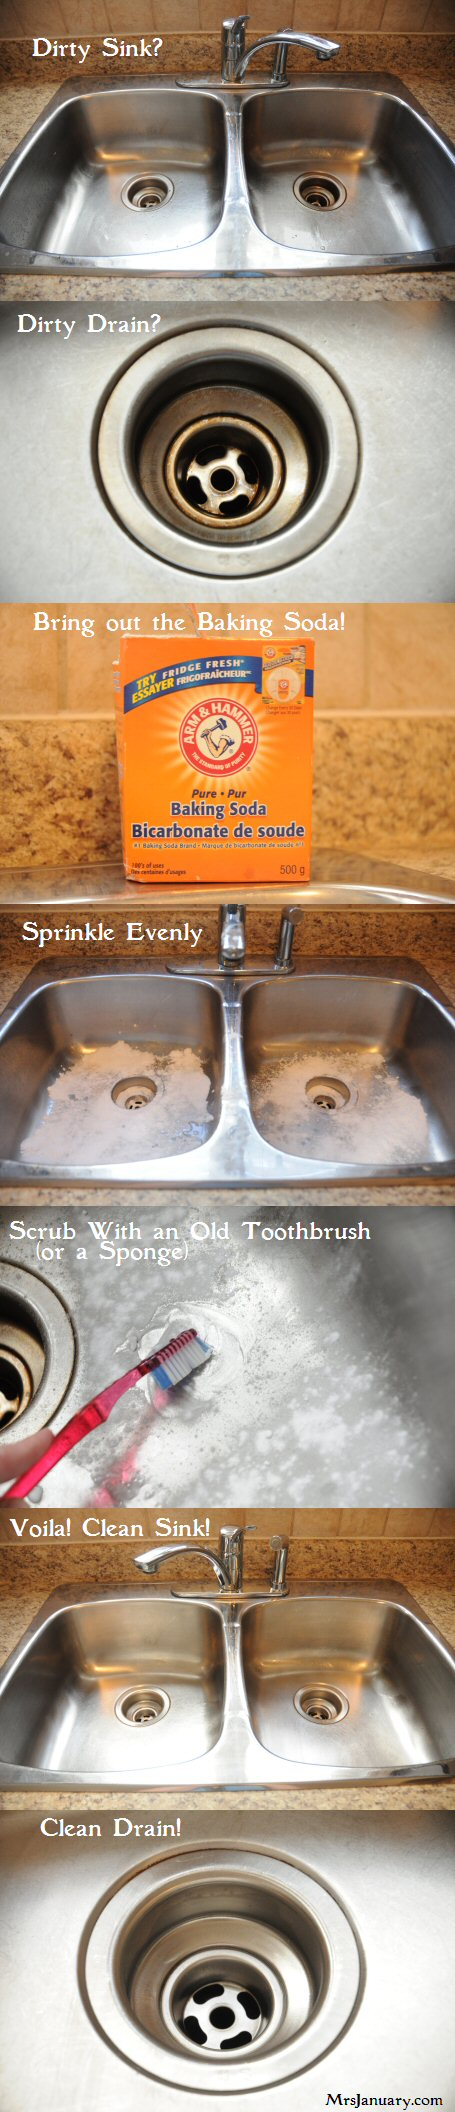 How To Clean Stainless Steel Kitchen Sink Or Drain 2